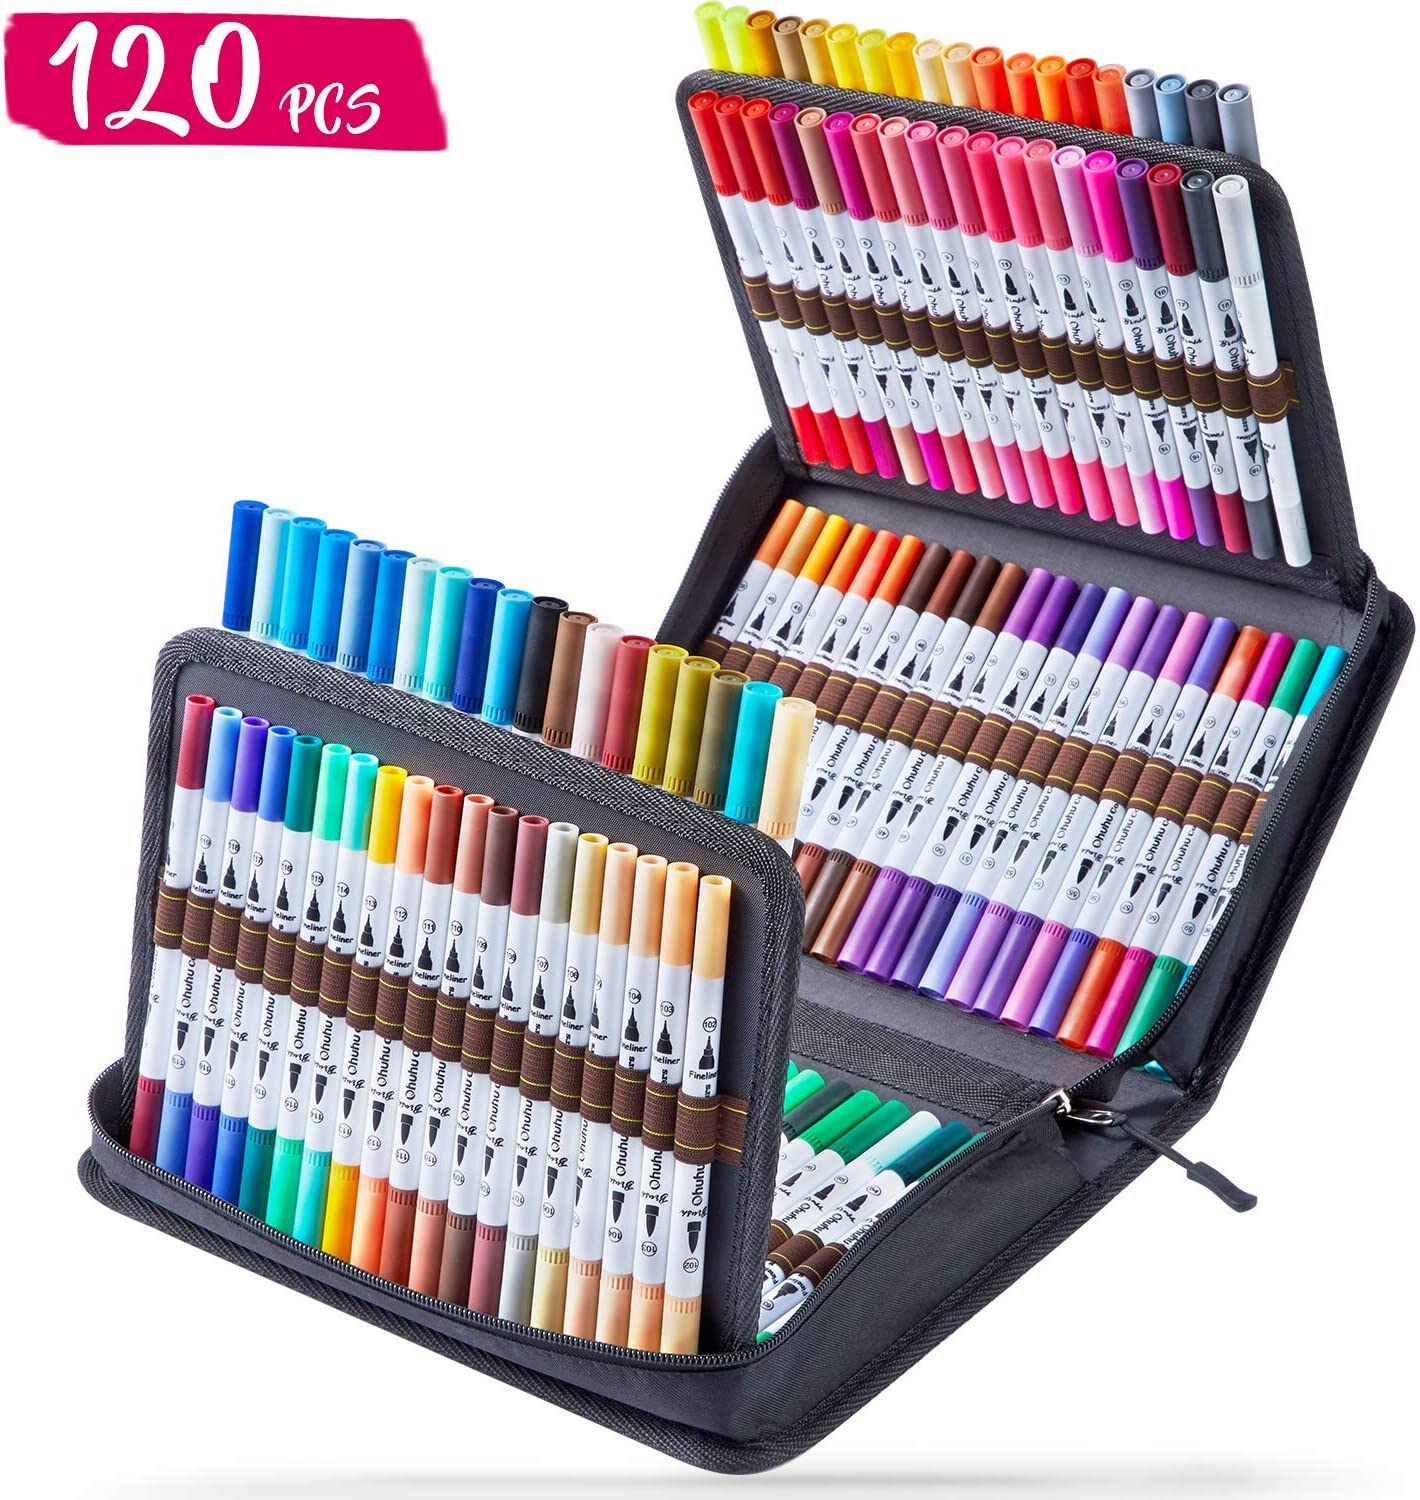 120 Colors Art Markers Set Water Based Marker for Calligraphy Drawing Sketching Coloring Bullet Journal Back to School Gift Ohuhu Dual Tips Coloring Brush Fineliner Color Marker Pens